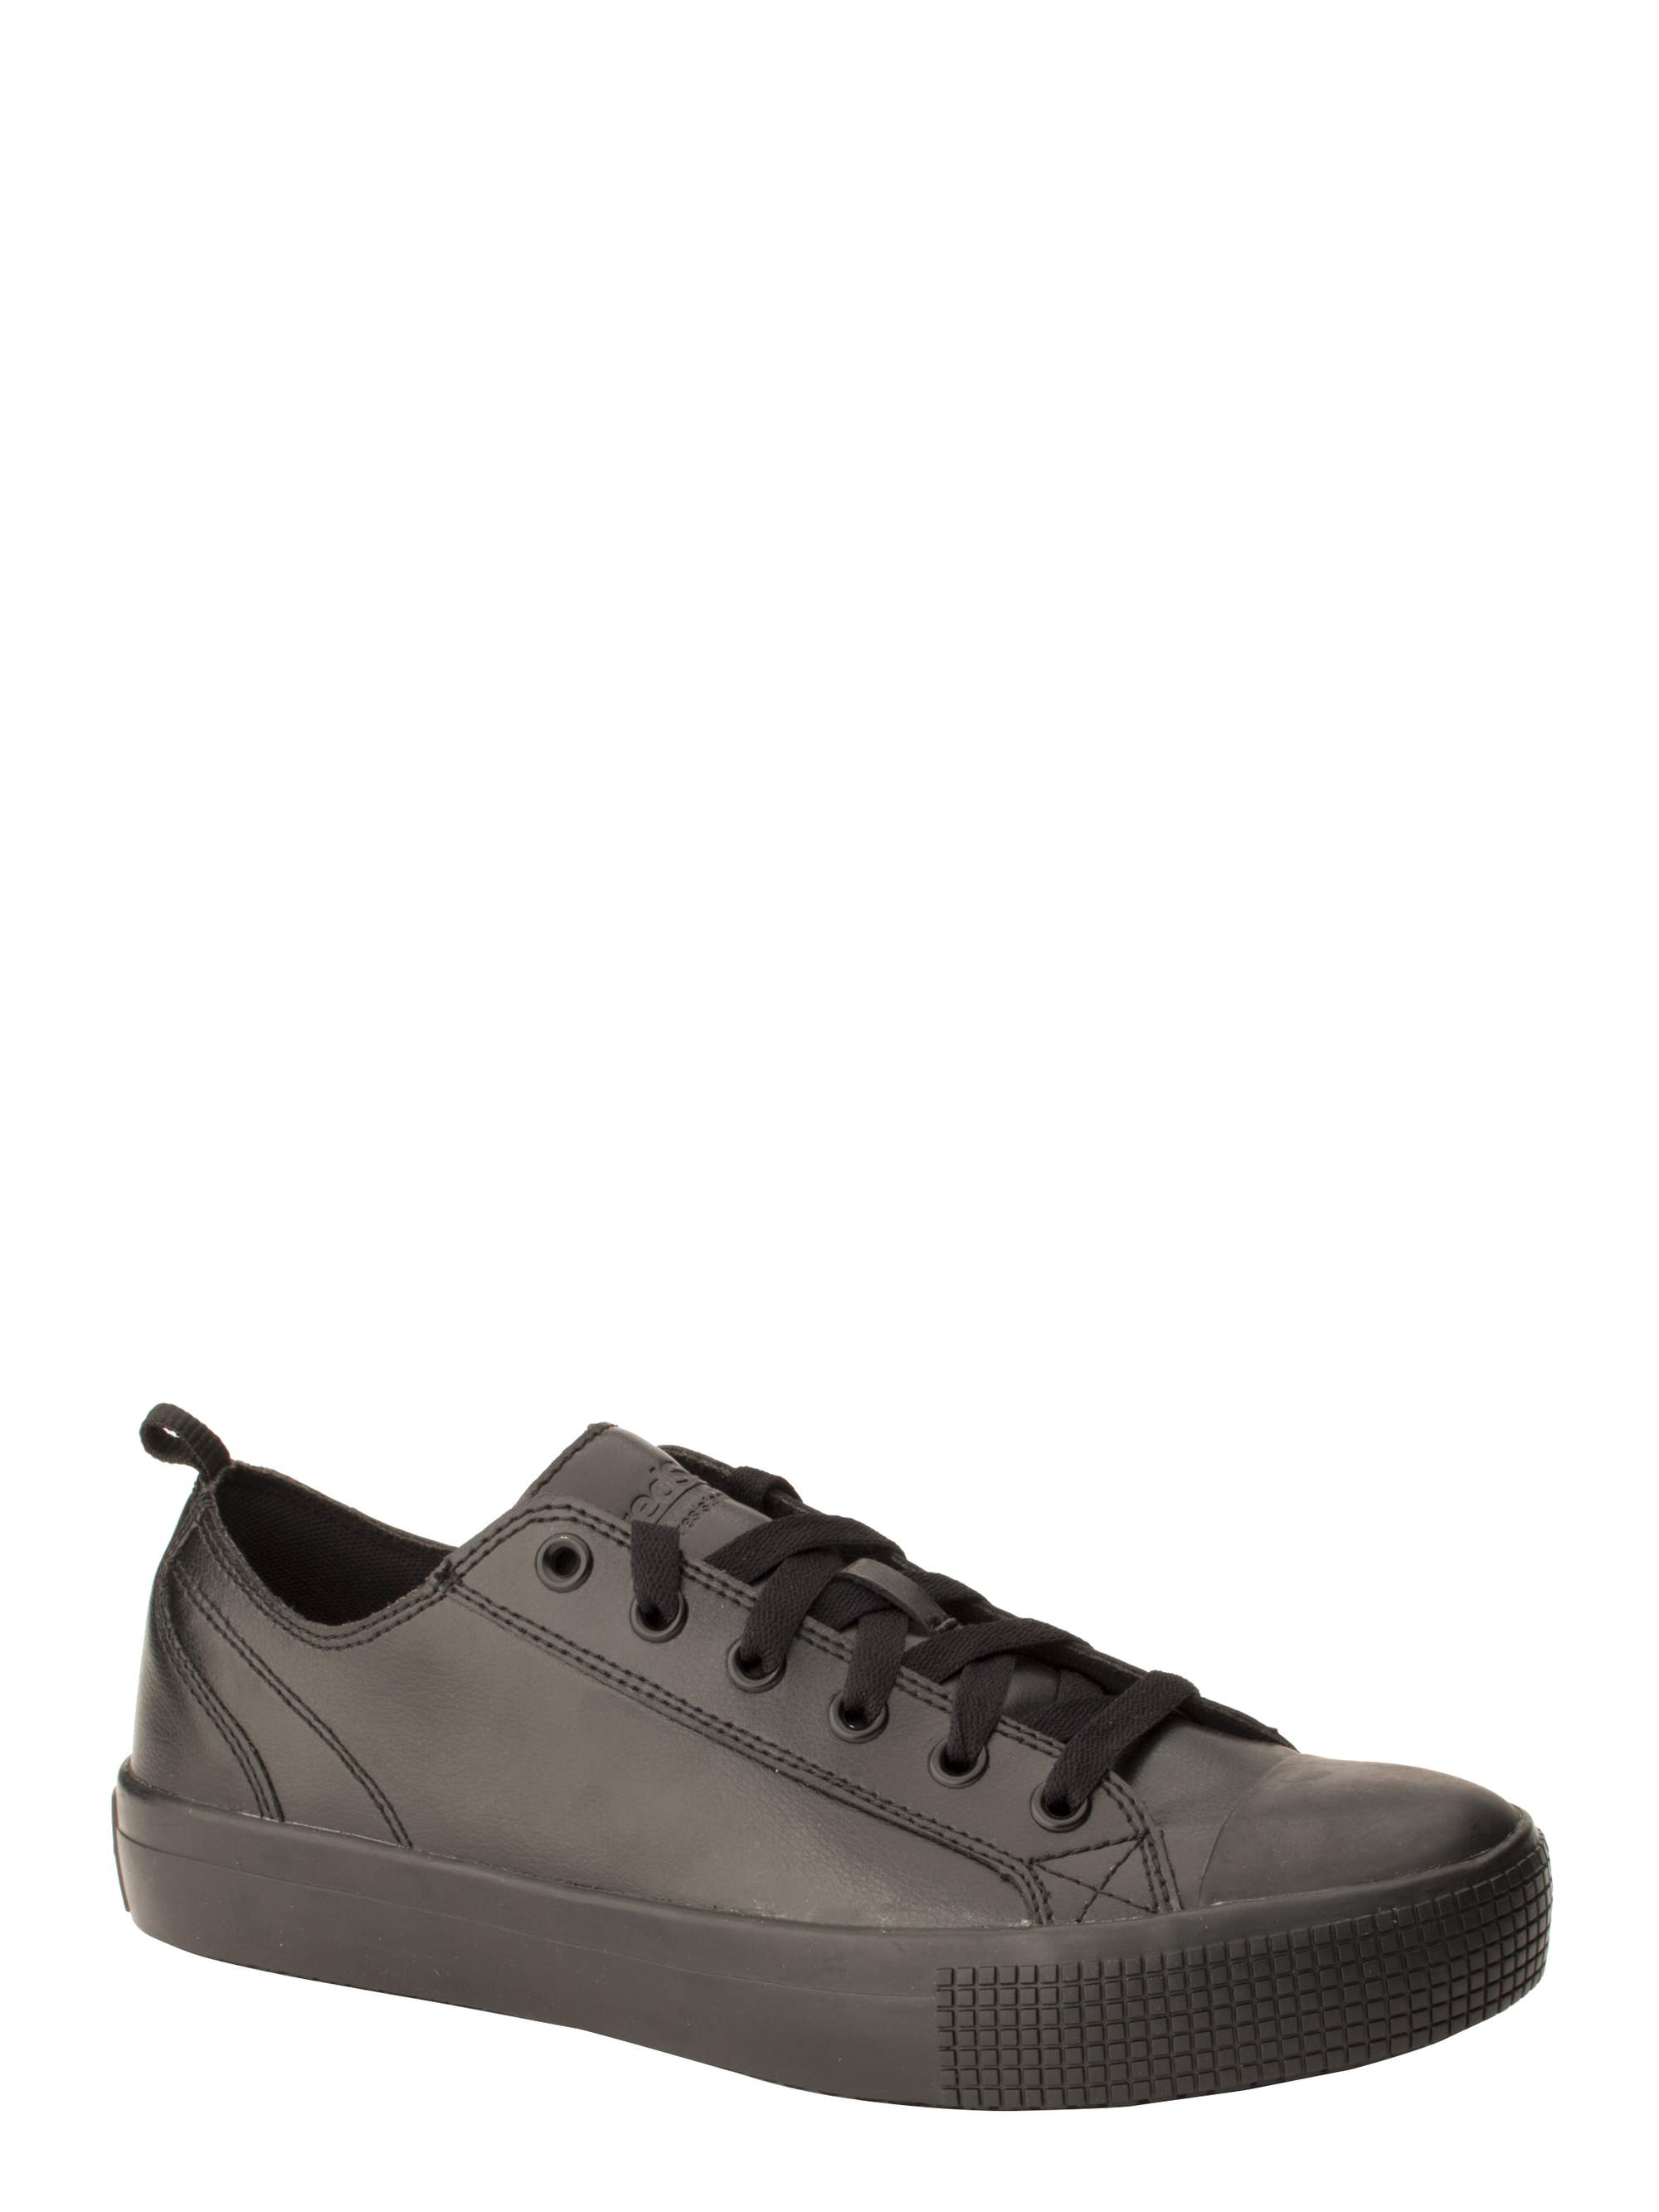 Tredsafe kitch unisex work shoes picture 50